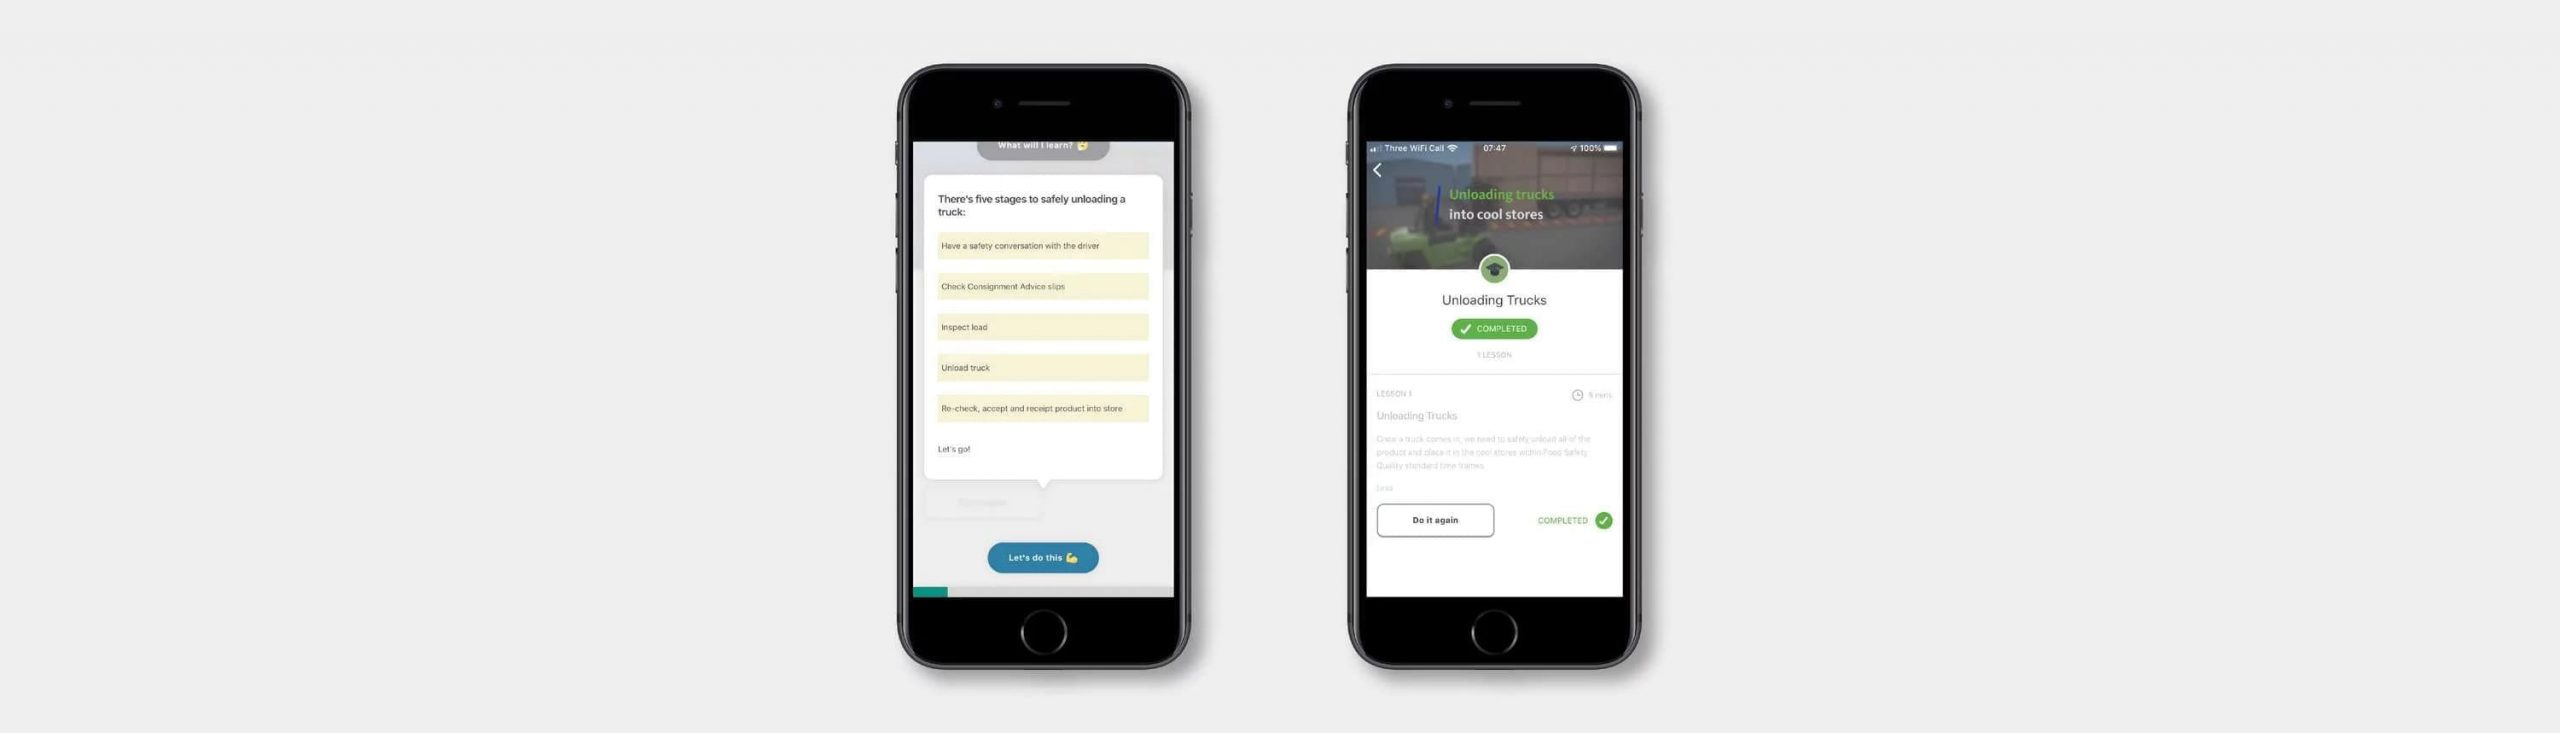 Bundle provide training in bite-sized, mobile-friendly morsels